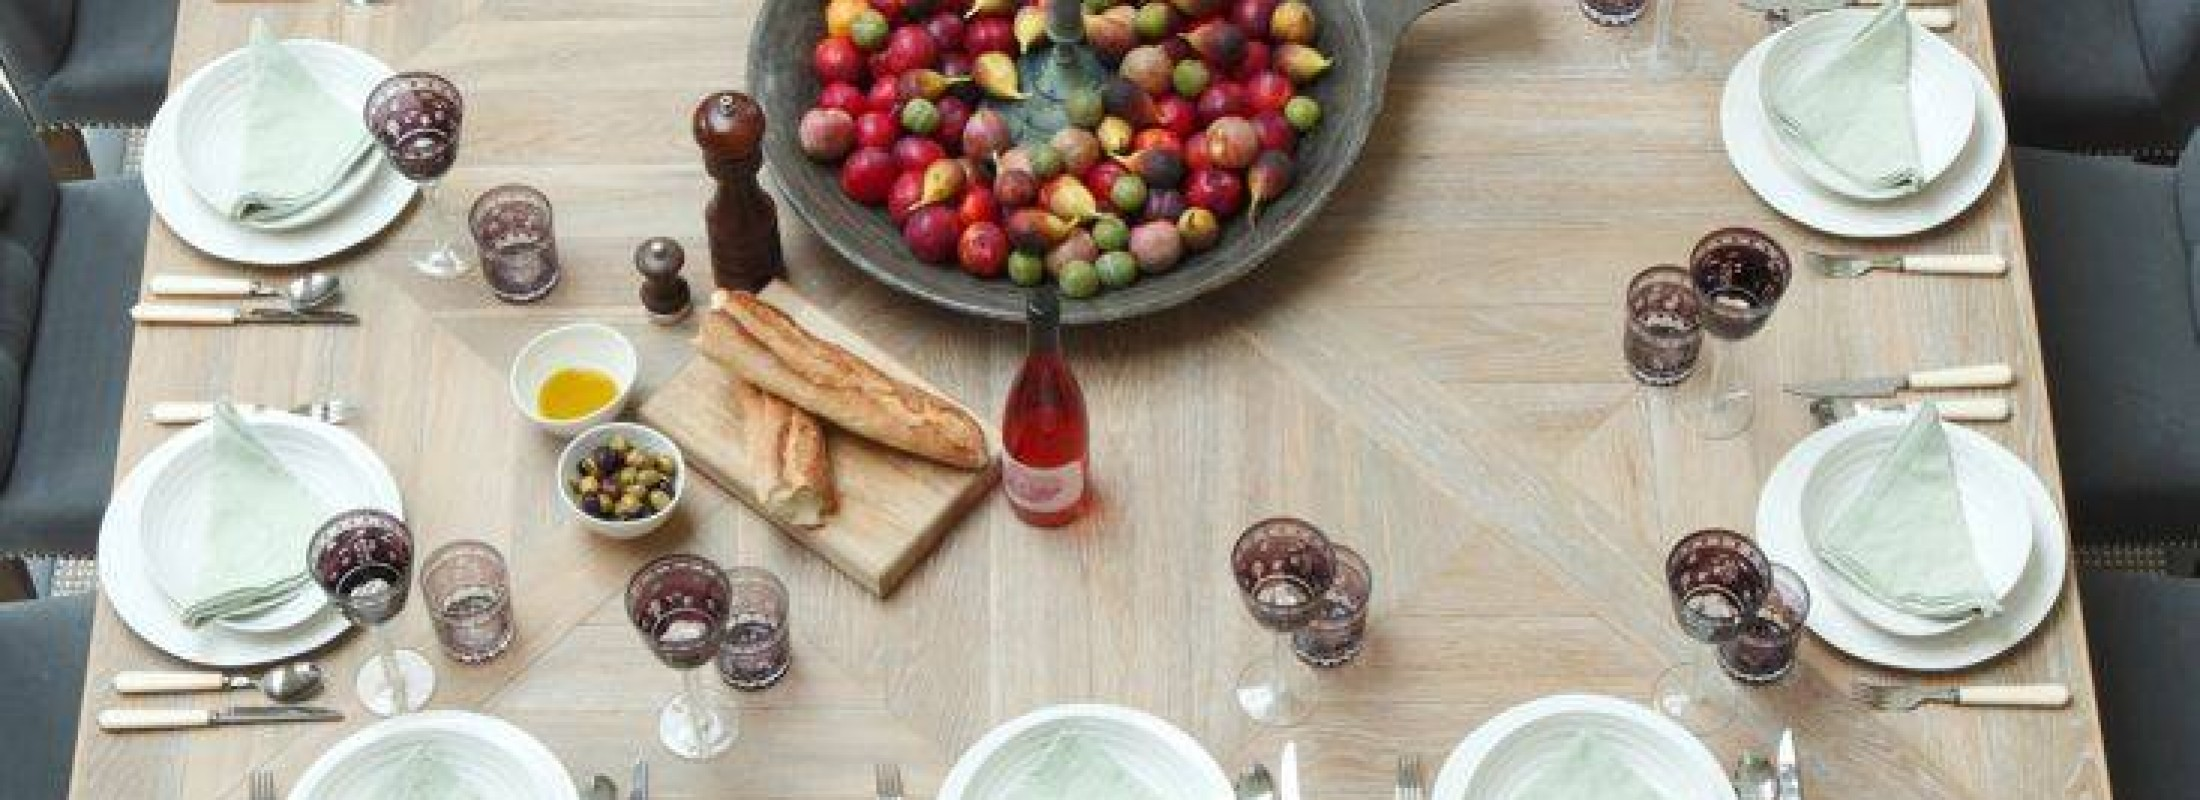 & Modern Rustic Thanksgiving Table Settings: 10 Great Ideas!